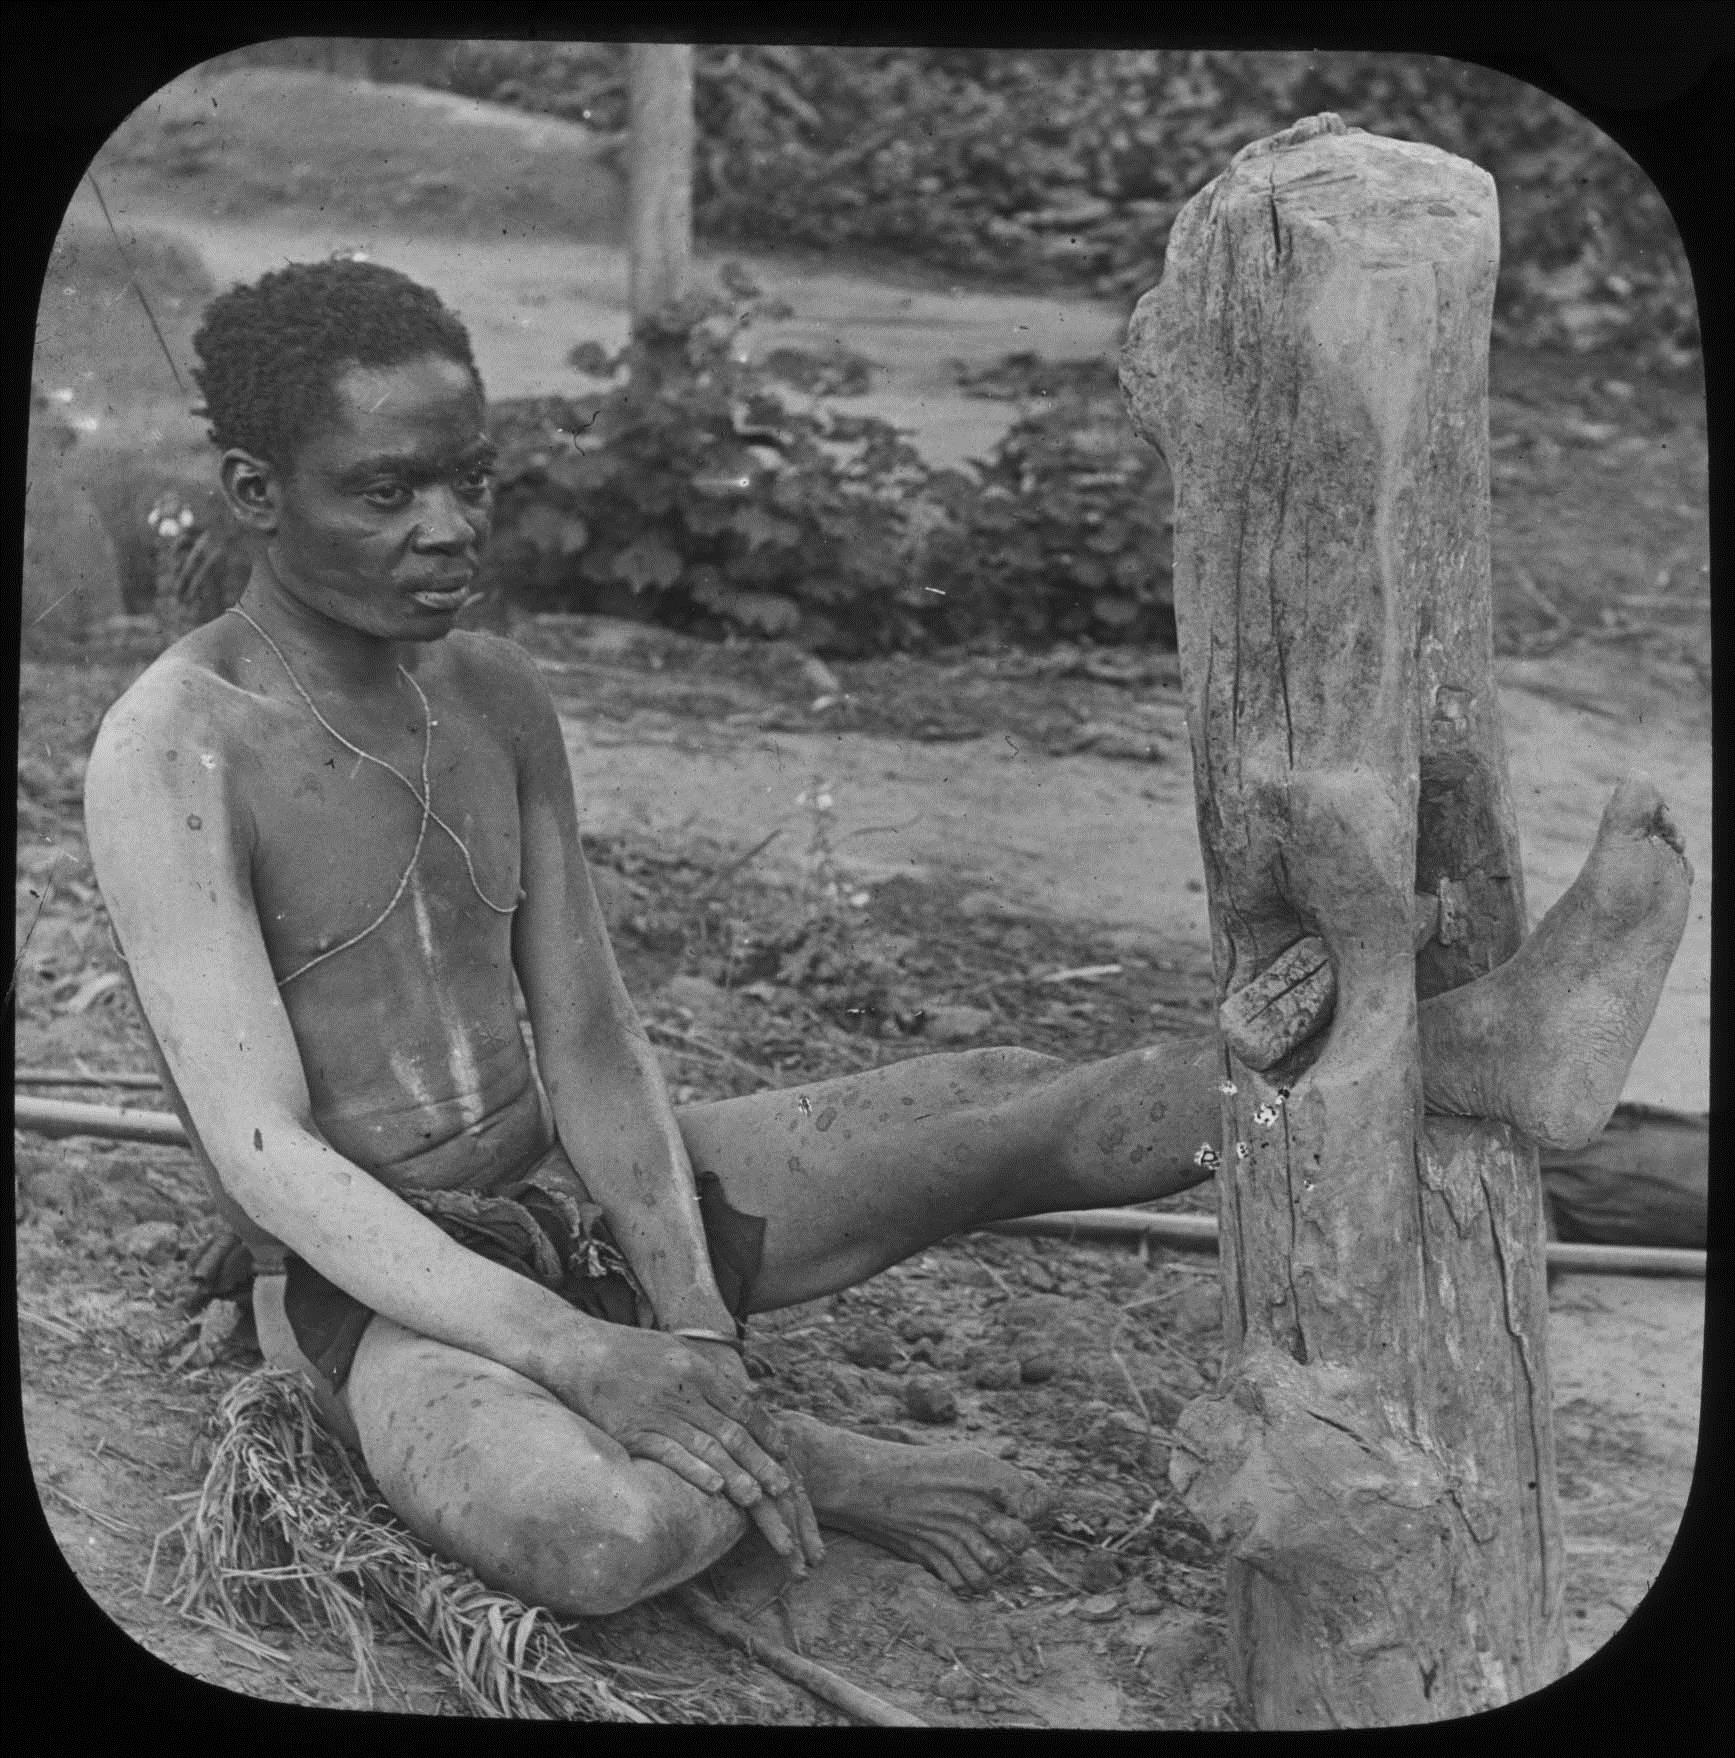 Above: an enslaved man. Photo by Joseph Burtt, sent to West Africa in 1905 by the Cadbury Company of England to investigate rumors that slaves were used to harvest cacao in the Portuguese colonies.